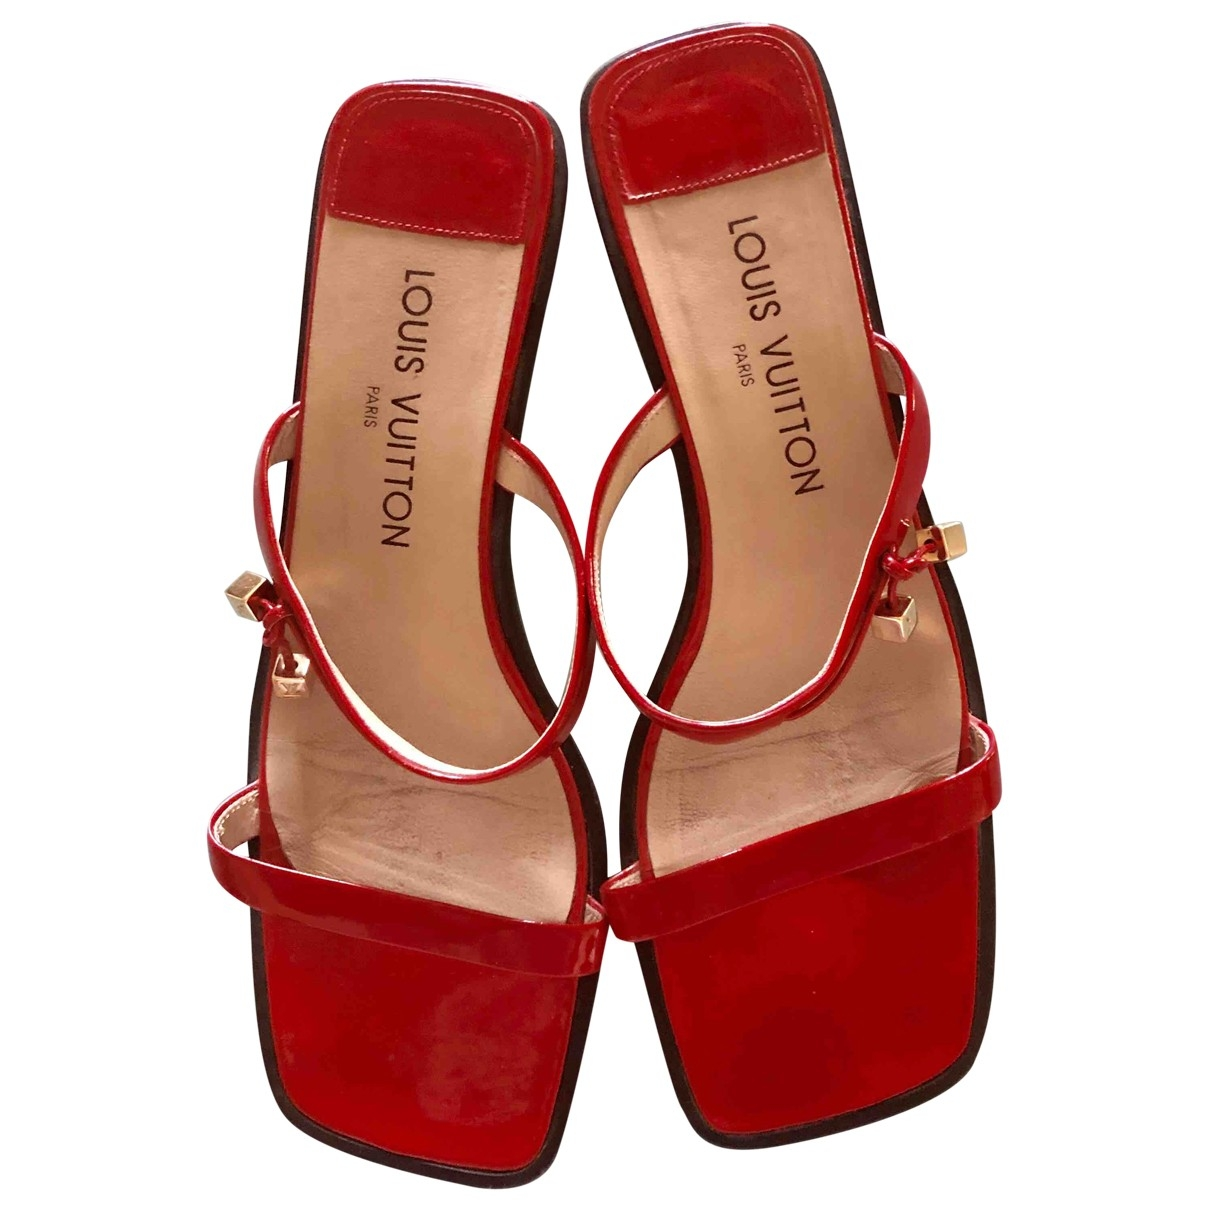 Louis Vuitton \N Red Patent leather Sandals for Women 38.5 EU